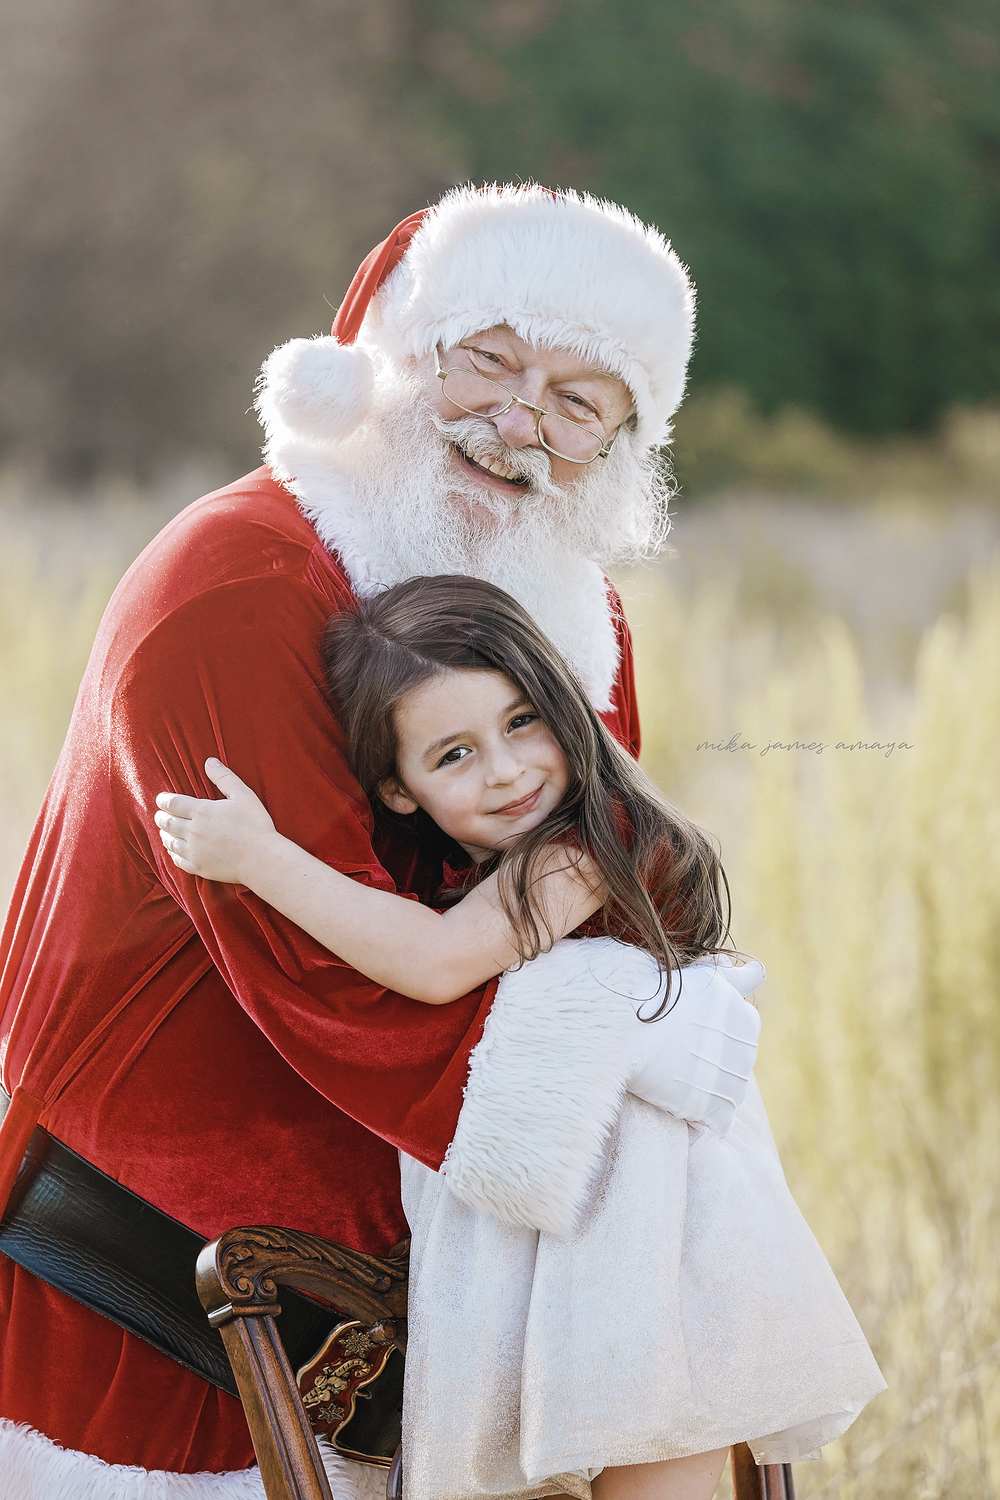 Santa hugs cute little girl while she stands on a chair in a field